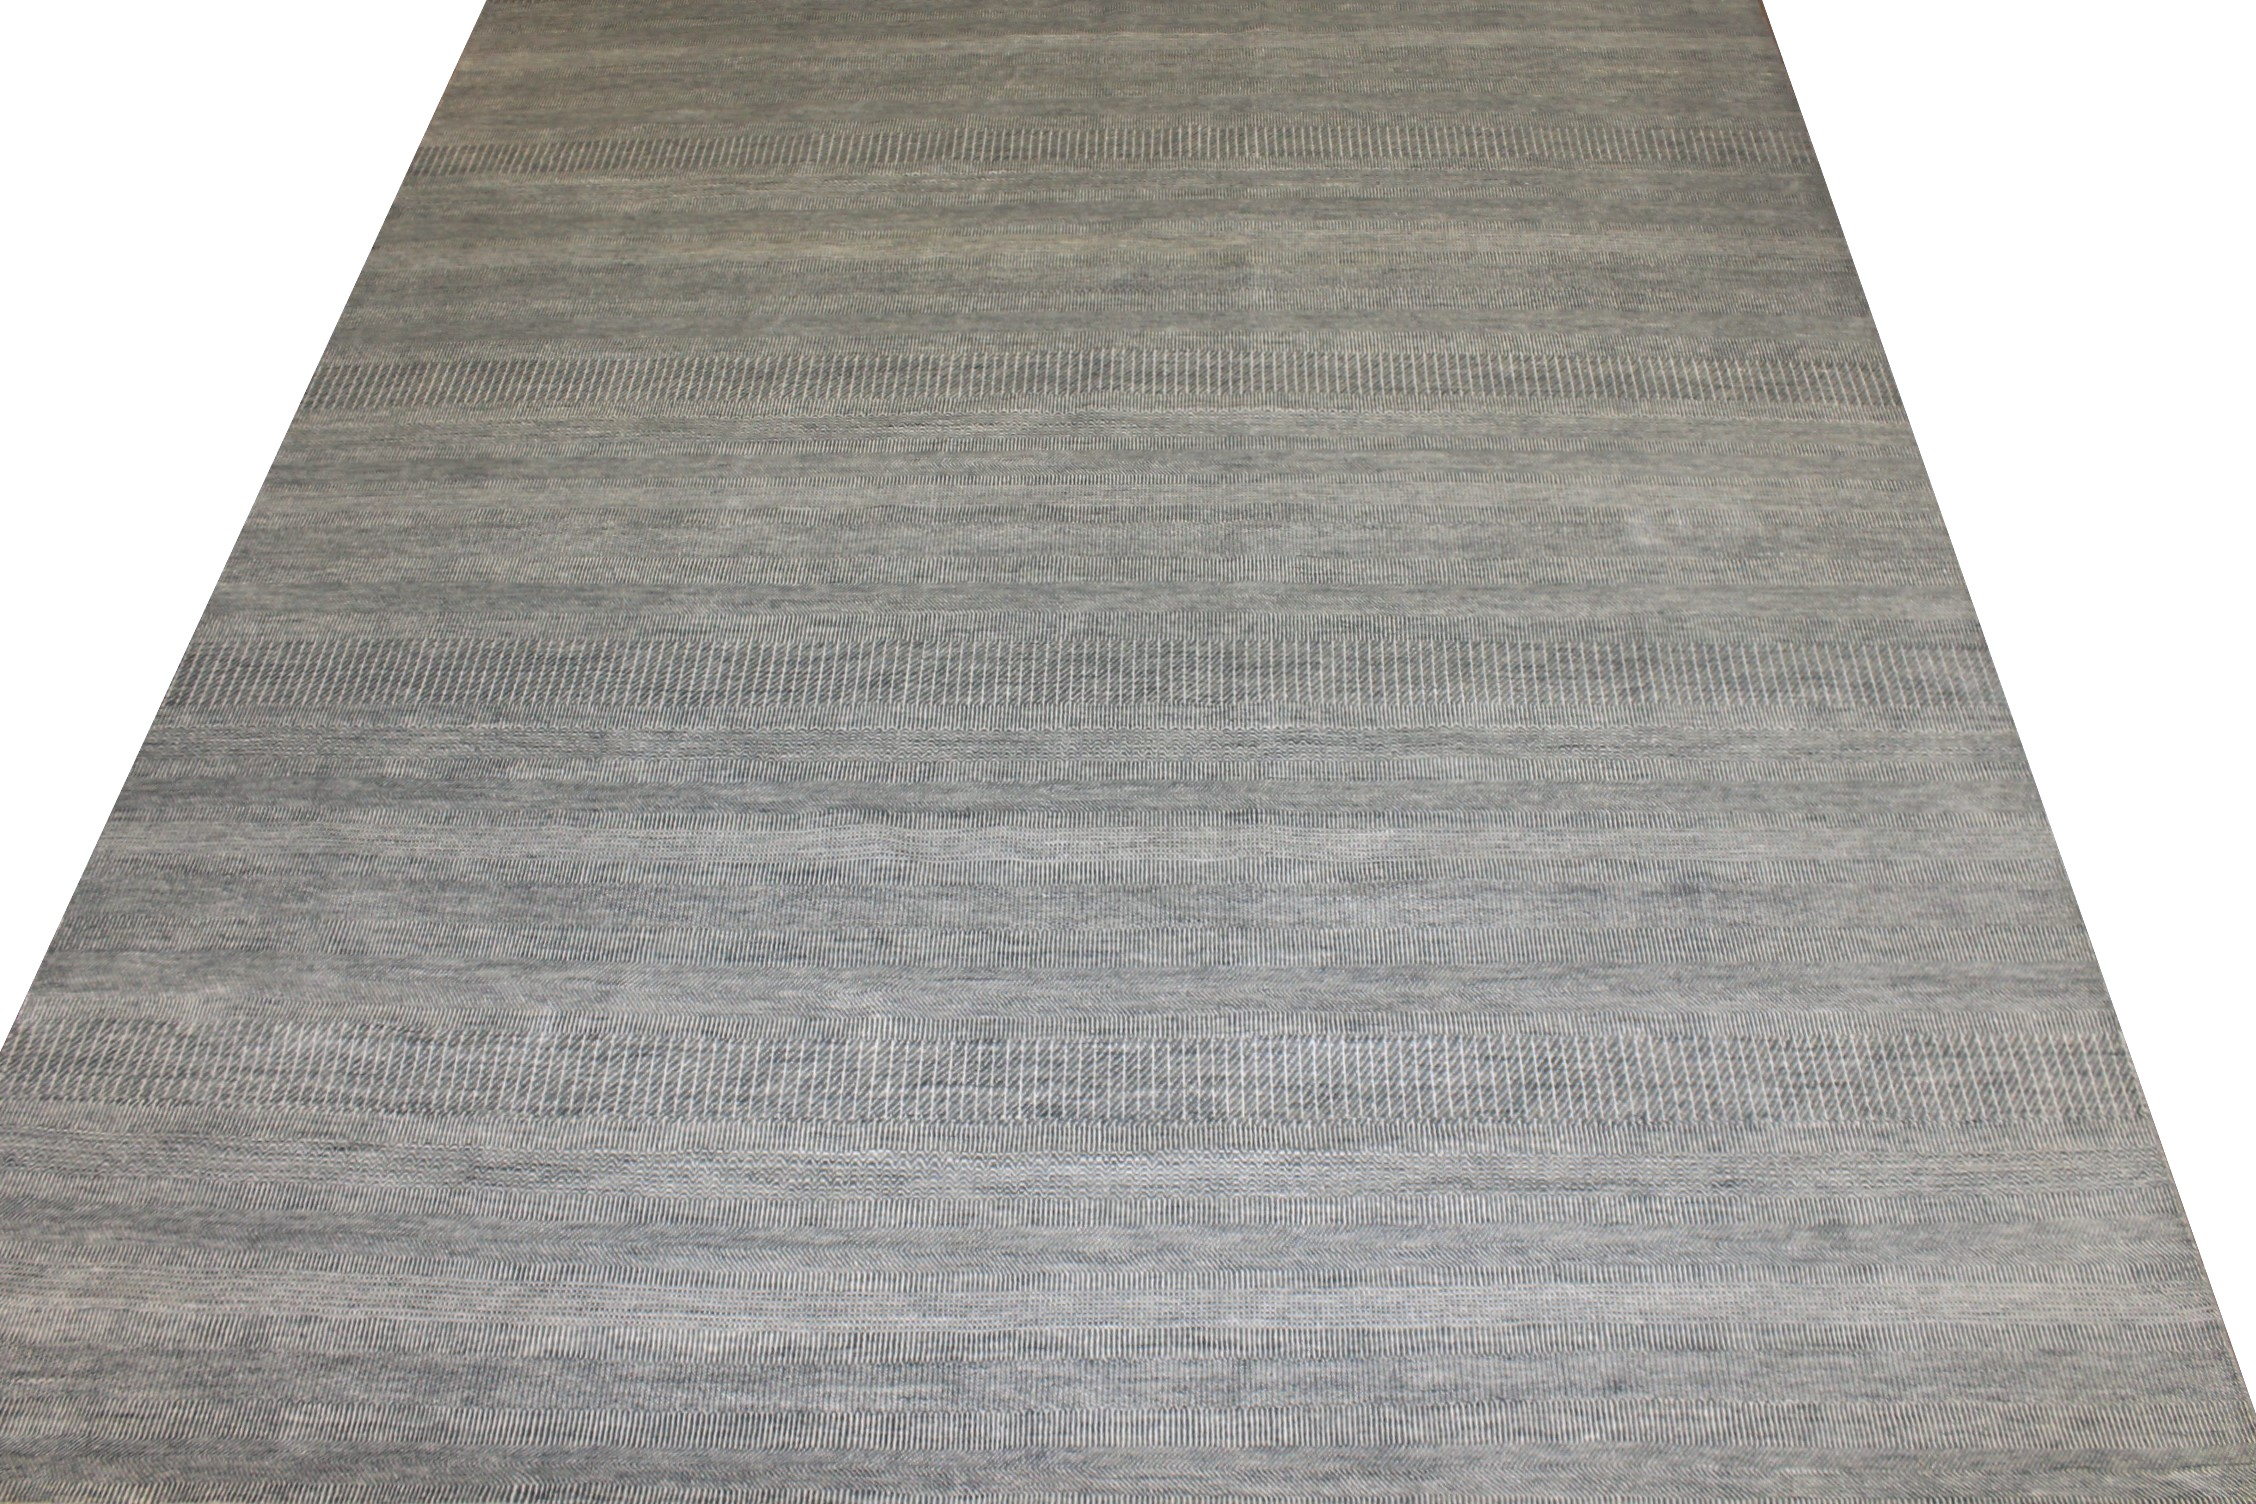 OVERSIZE Casual Hand Knotted Wool & Viscose Area Rug - MR024932